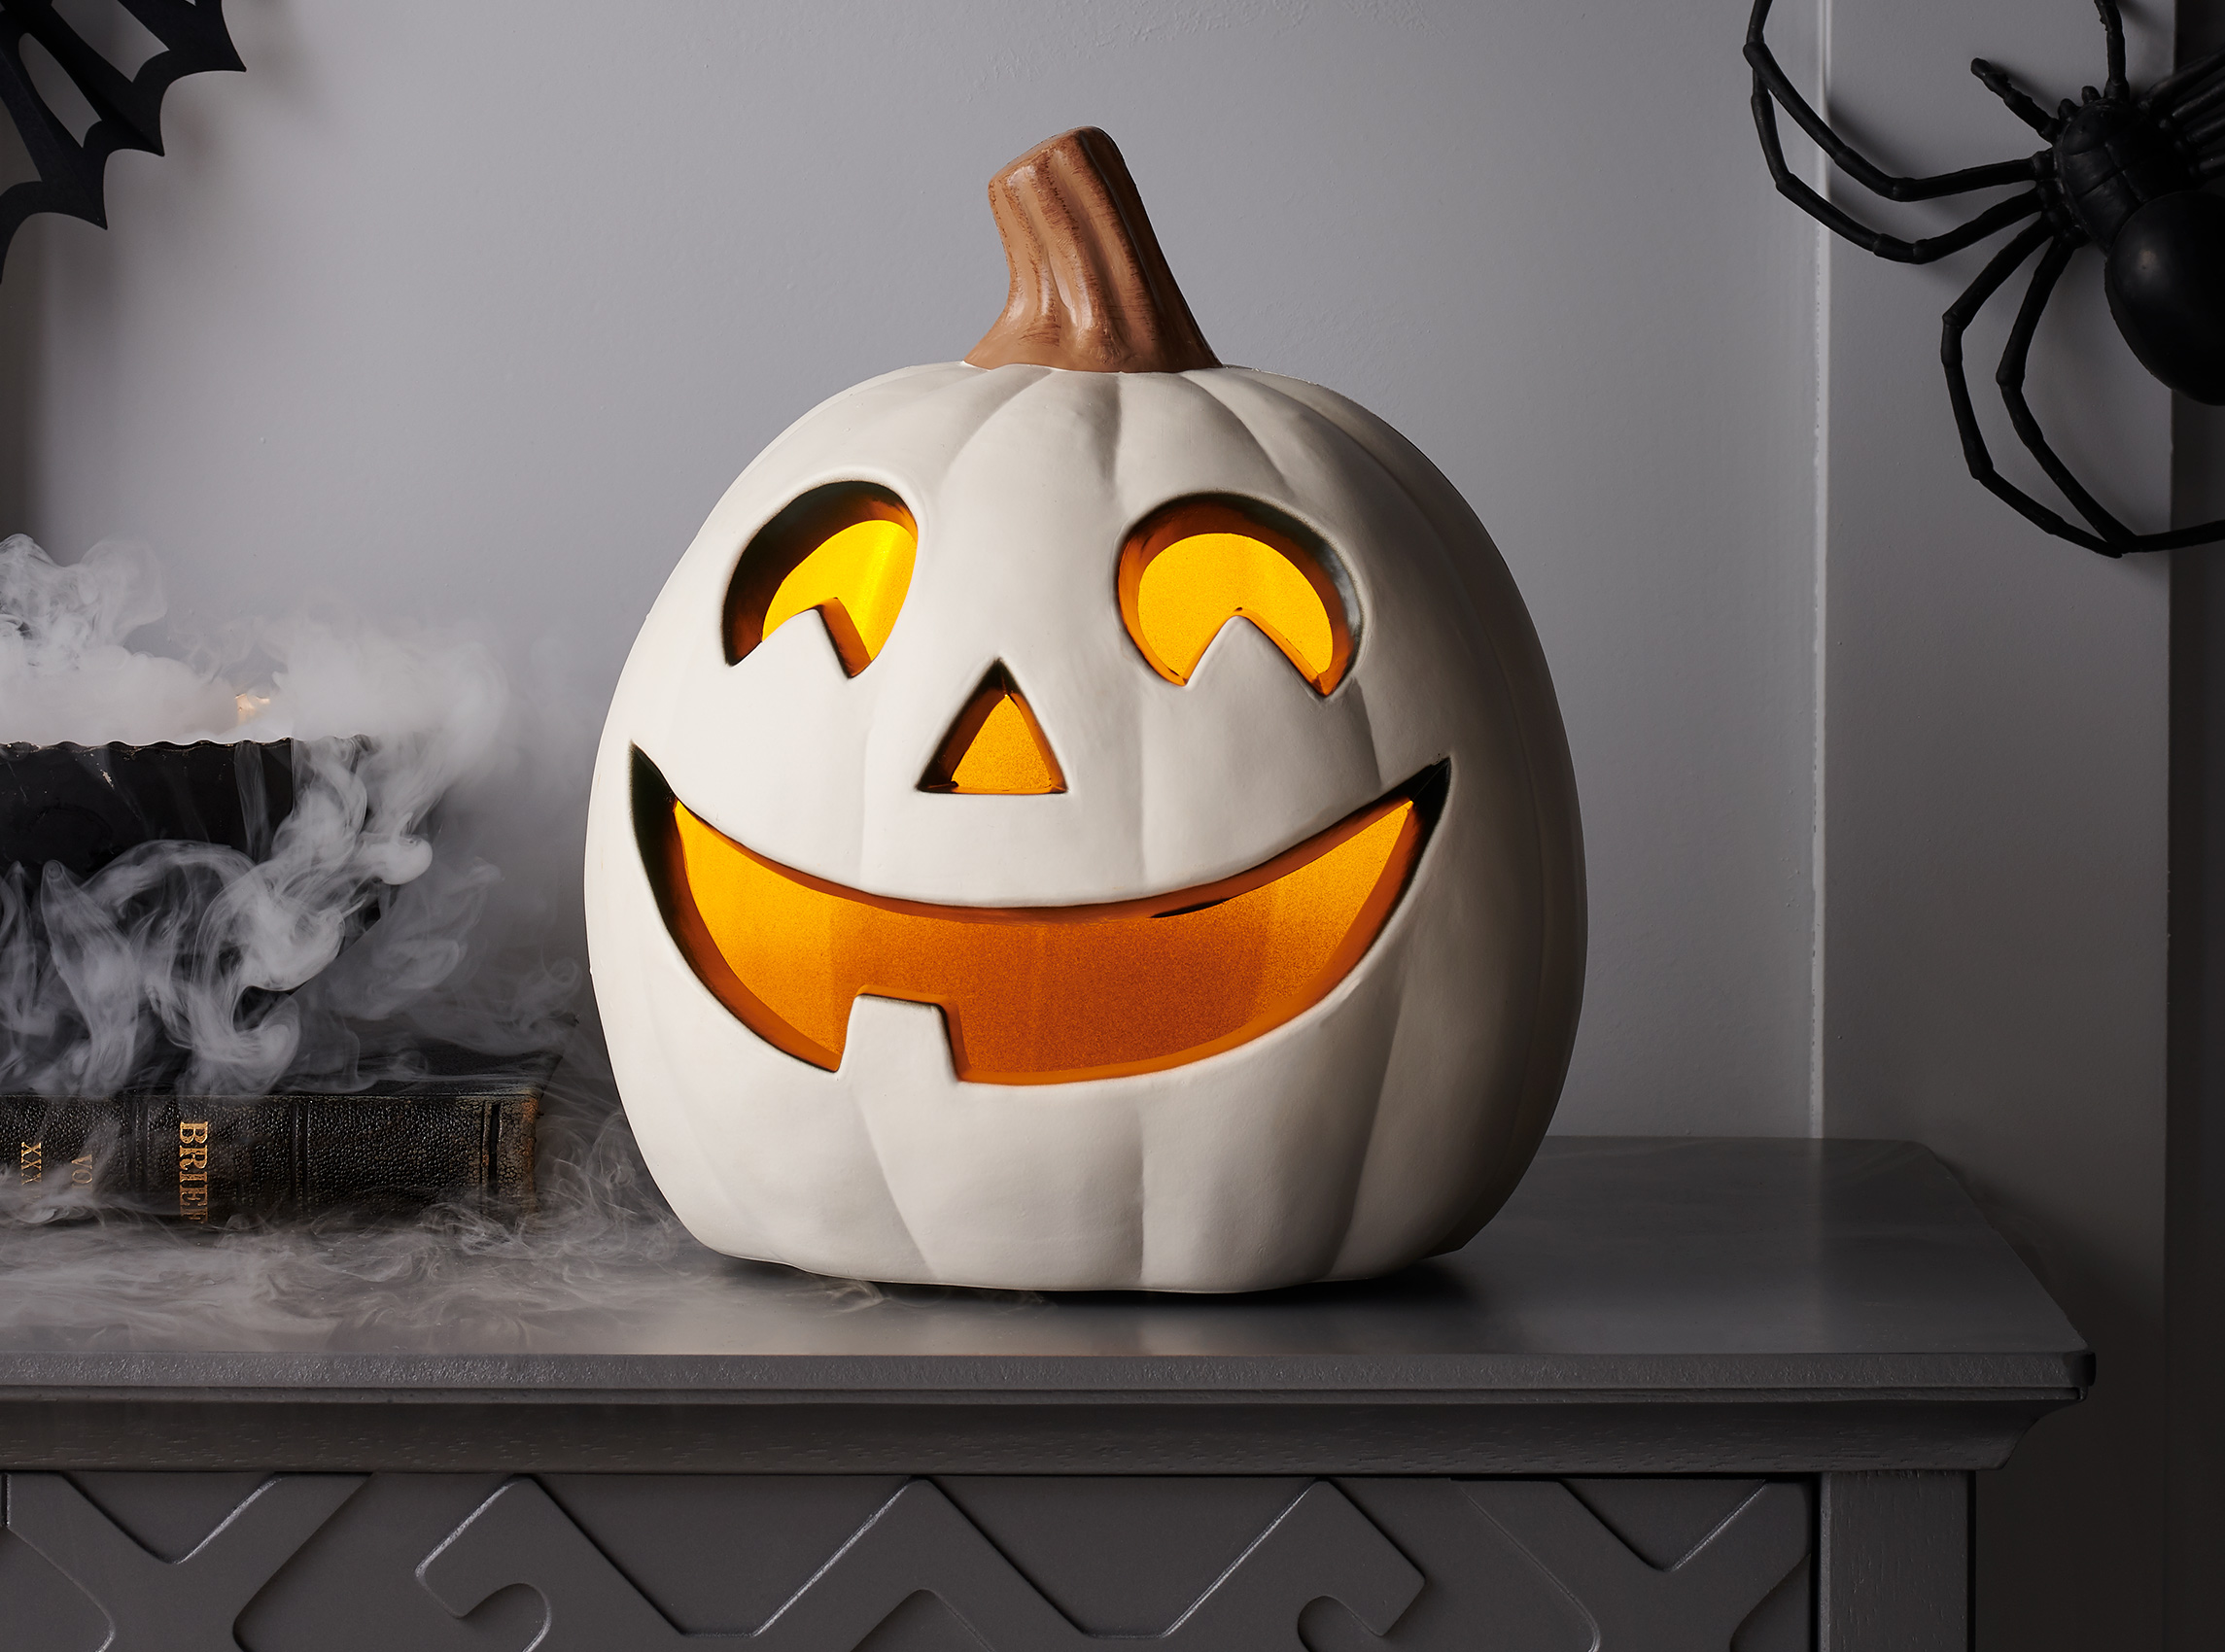 C-001217-01-025_240-43-0690_Lit_Pumpkin_White_9in